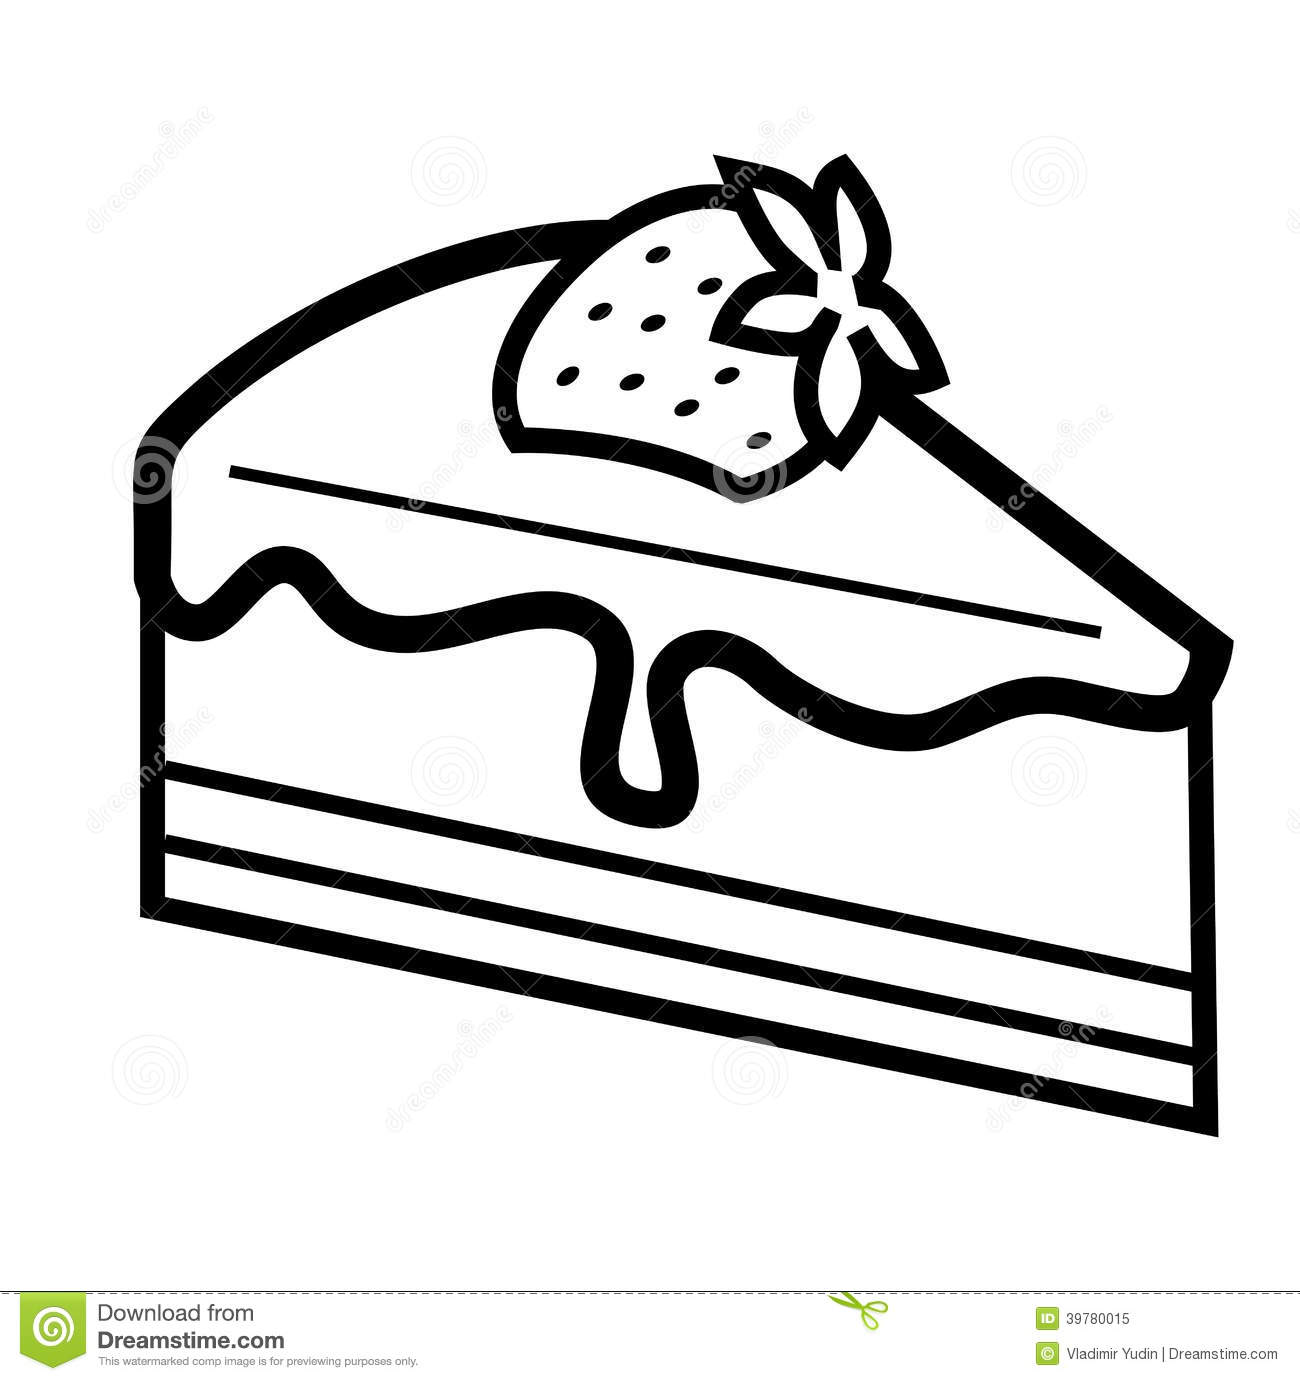 Cake Clipart Black And White : Cake Black And White Clipart - Clipart Suggest